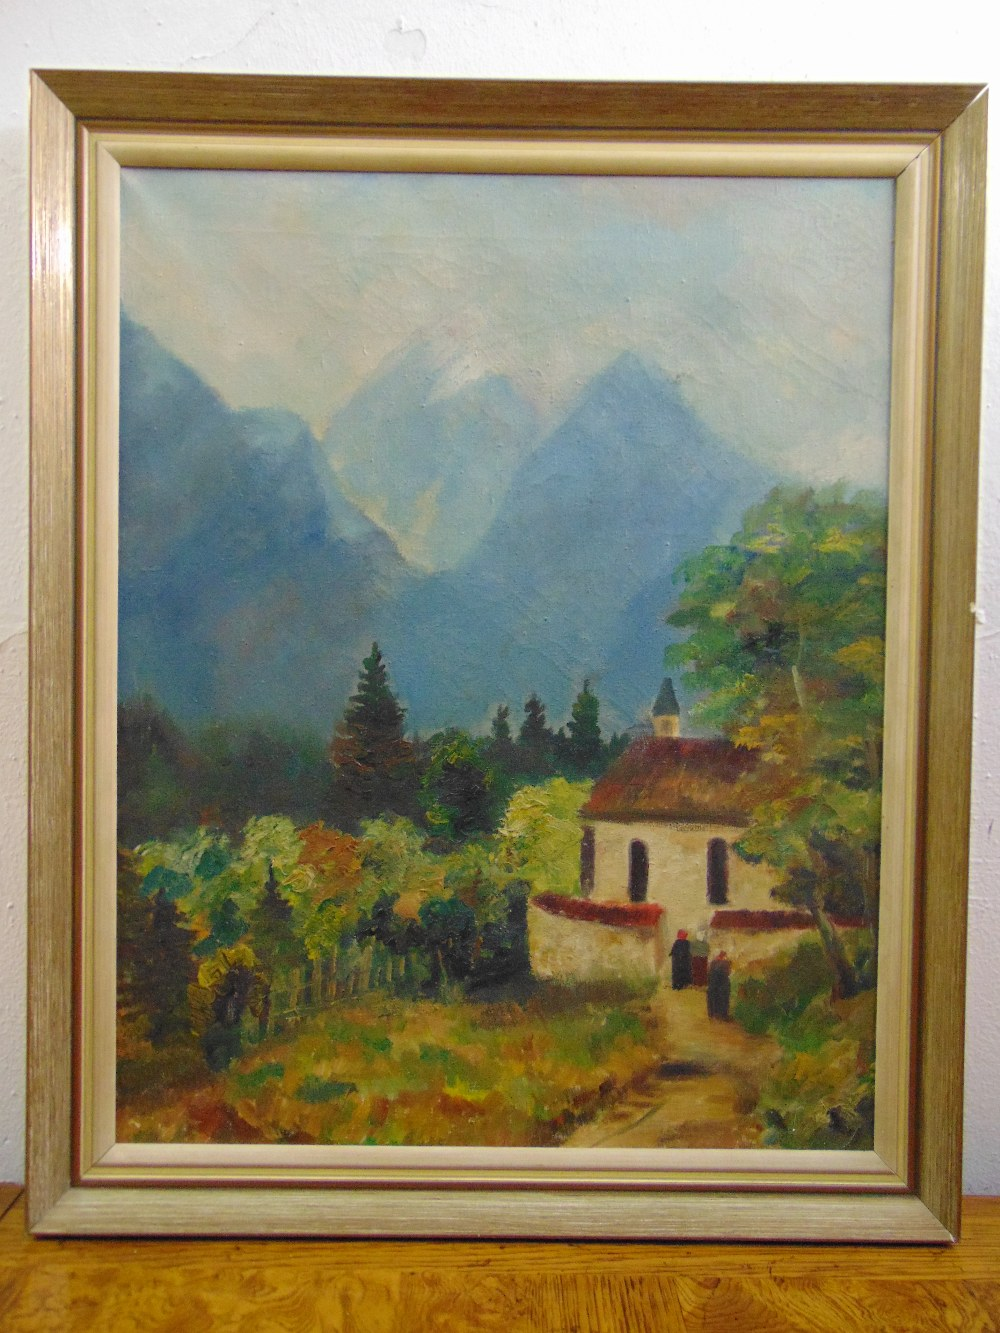 Lot 89 - A framed oil on canvas of a Swiss mountain scene, 50.5 x 40.5cm